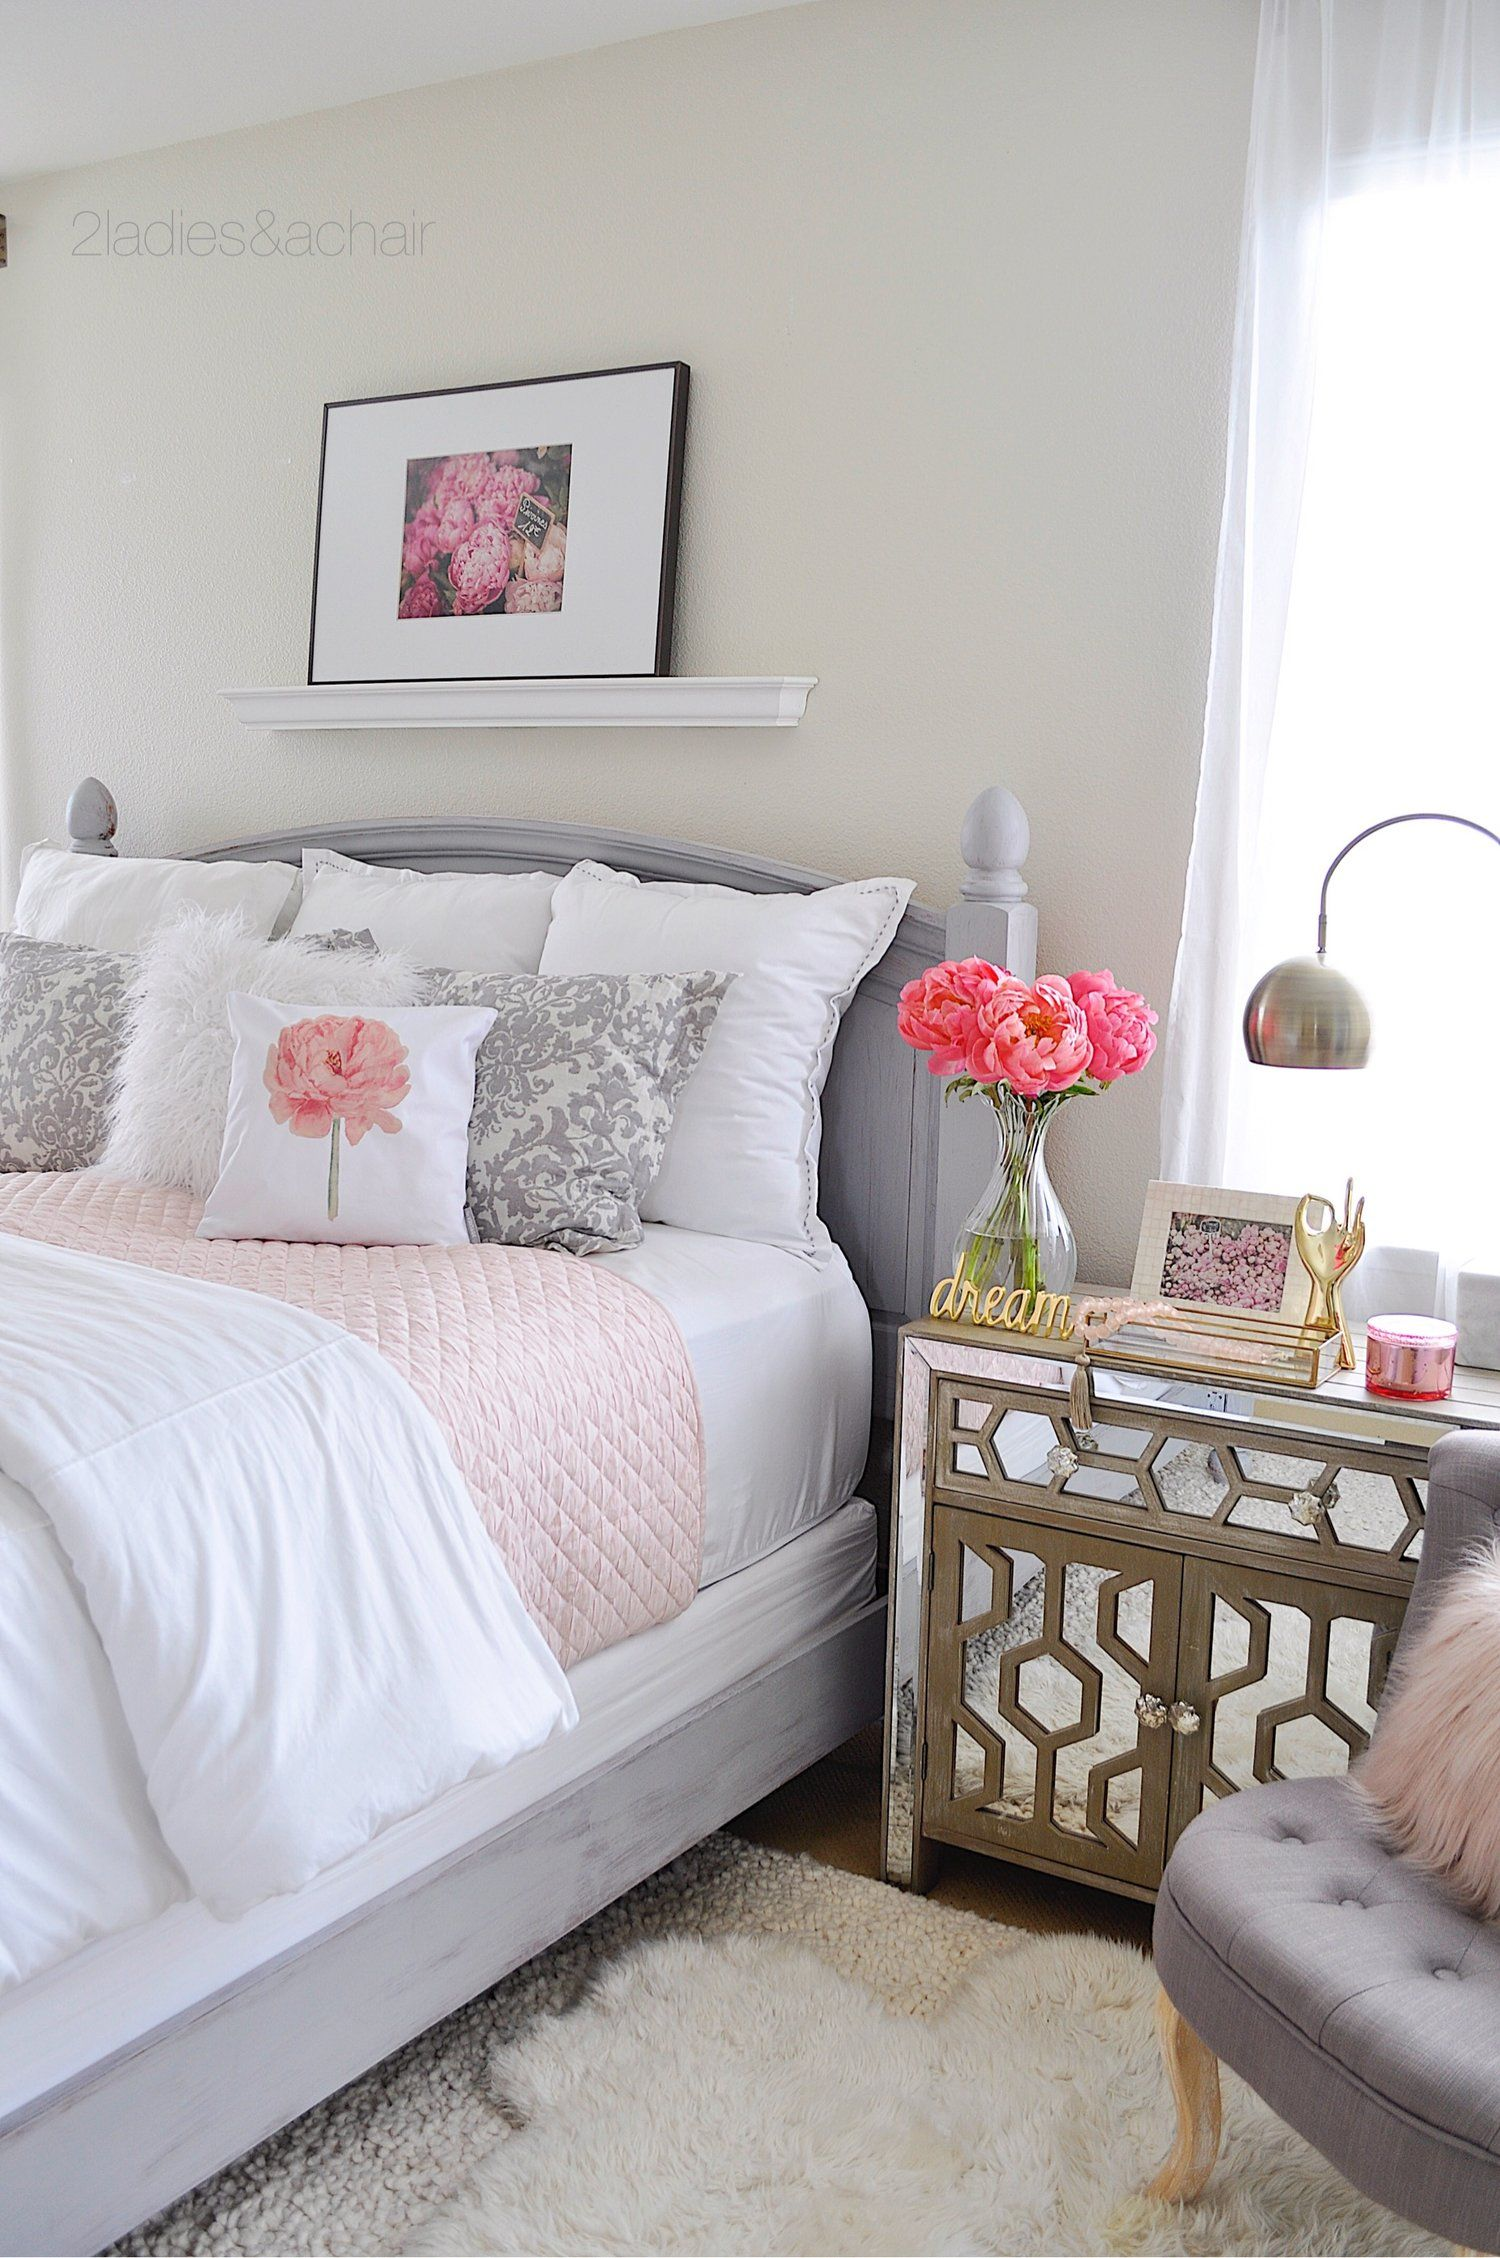 summer home tour adding color to your home woman bedroom home decor bedroom home decor on grey and light pink bedroom decorating ideas id=93292